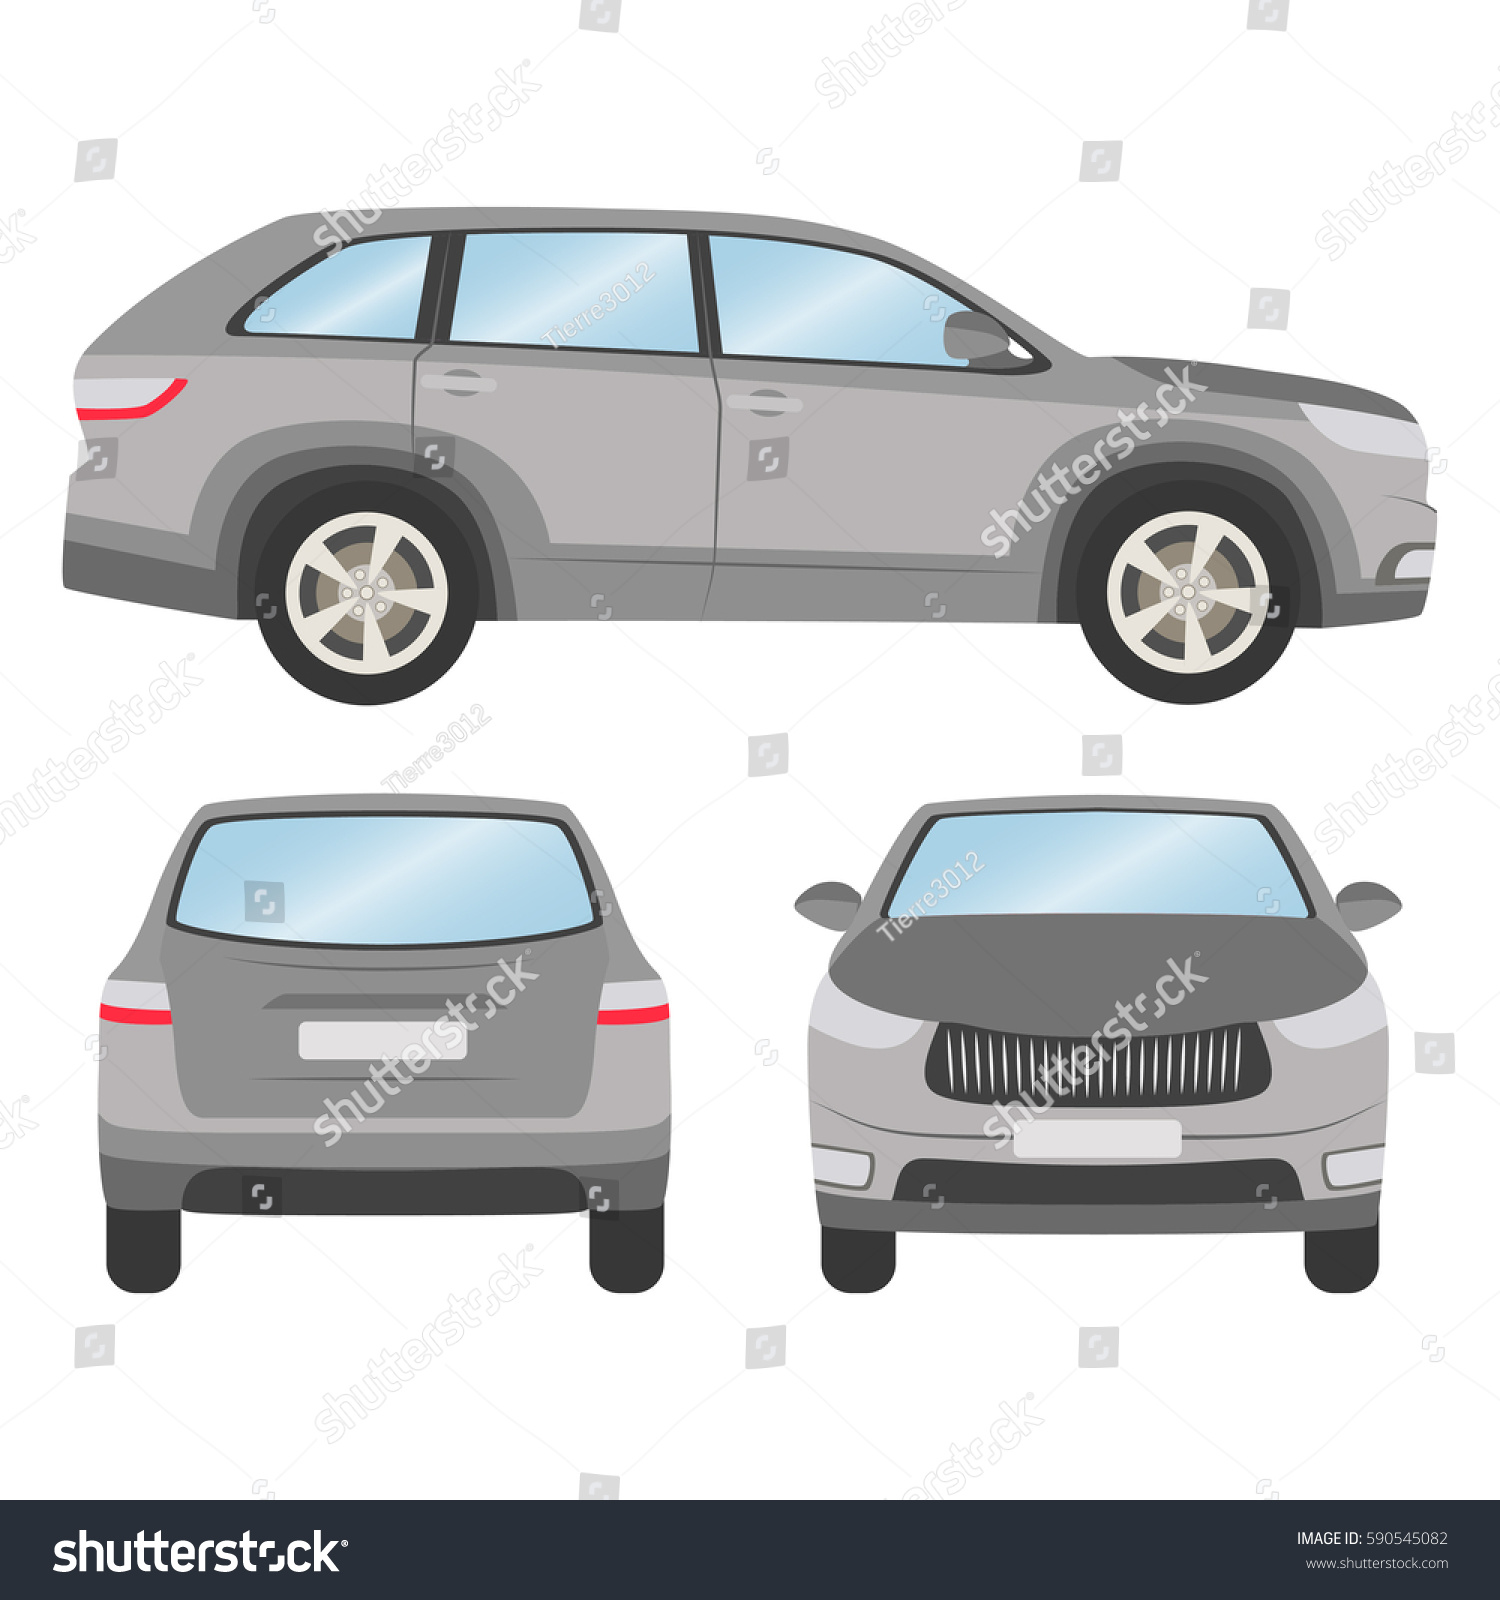 car vector template on white background stock vector 590545082 shutterstock. Black Bedroom Furniture Sets. Home Design Ideas